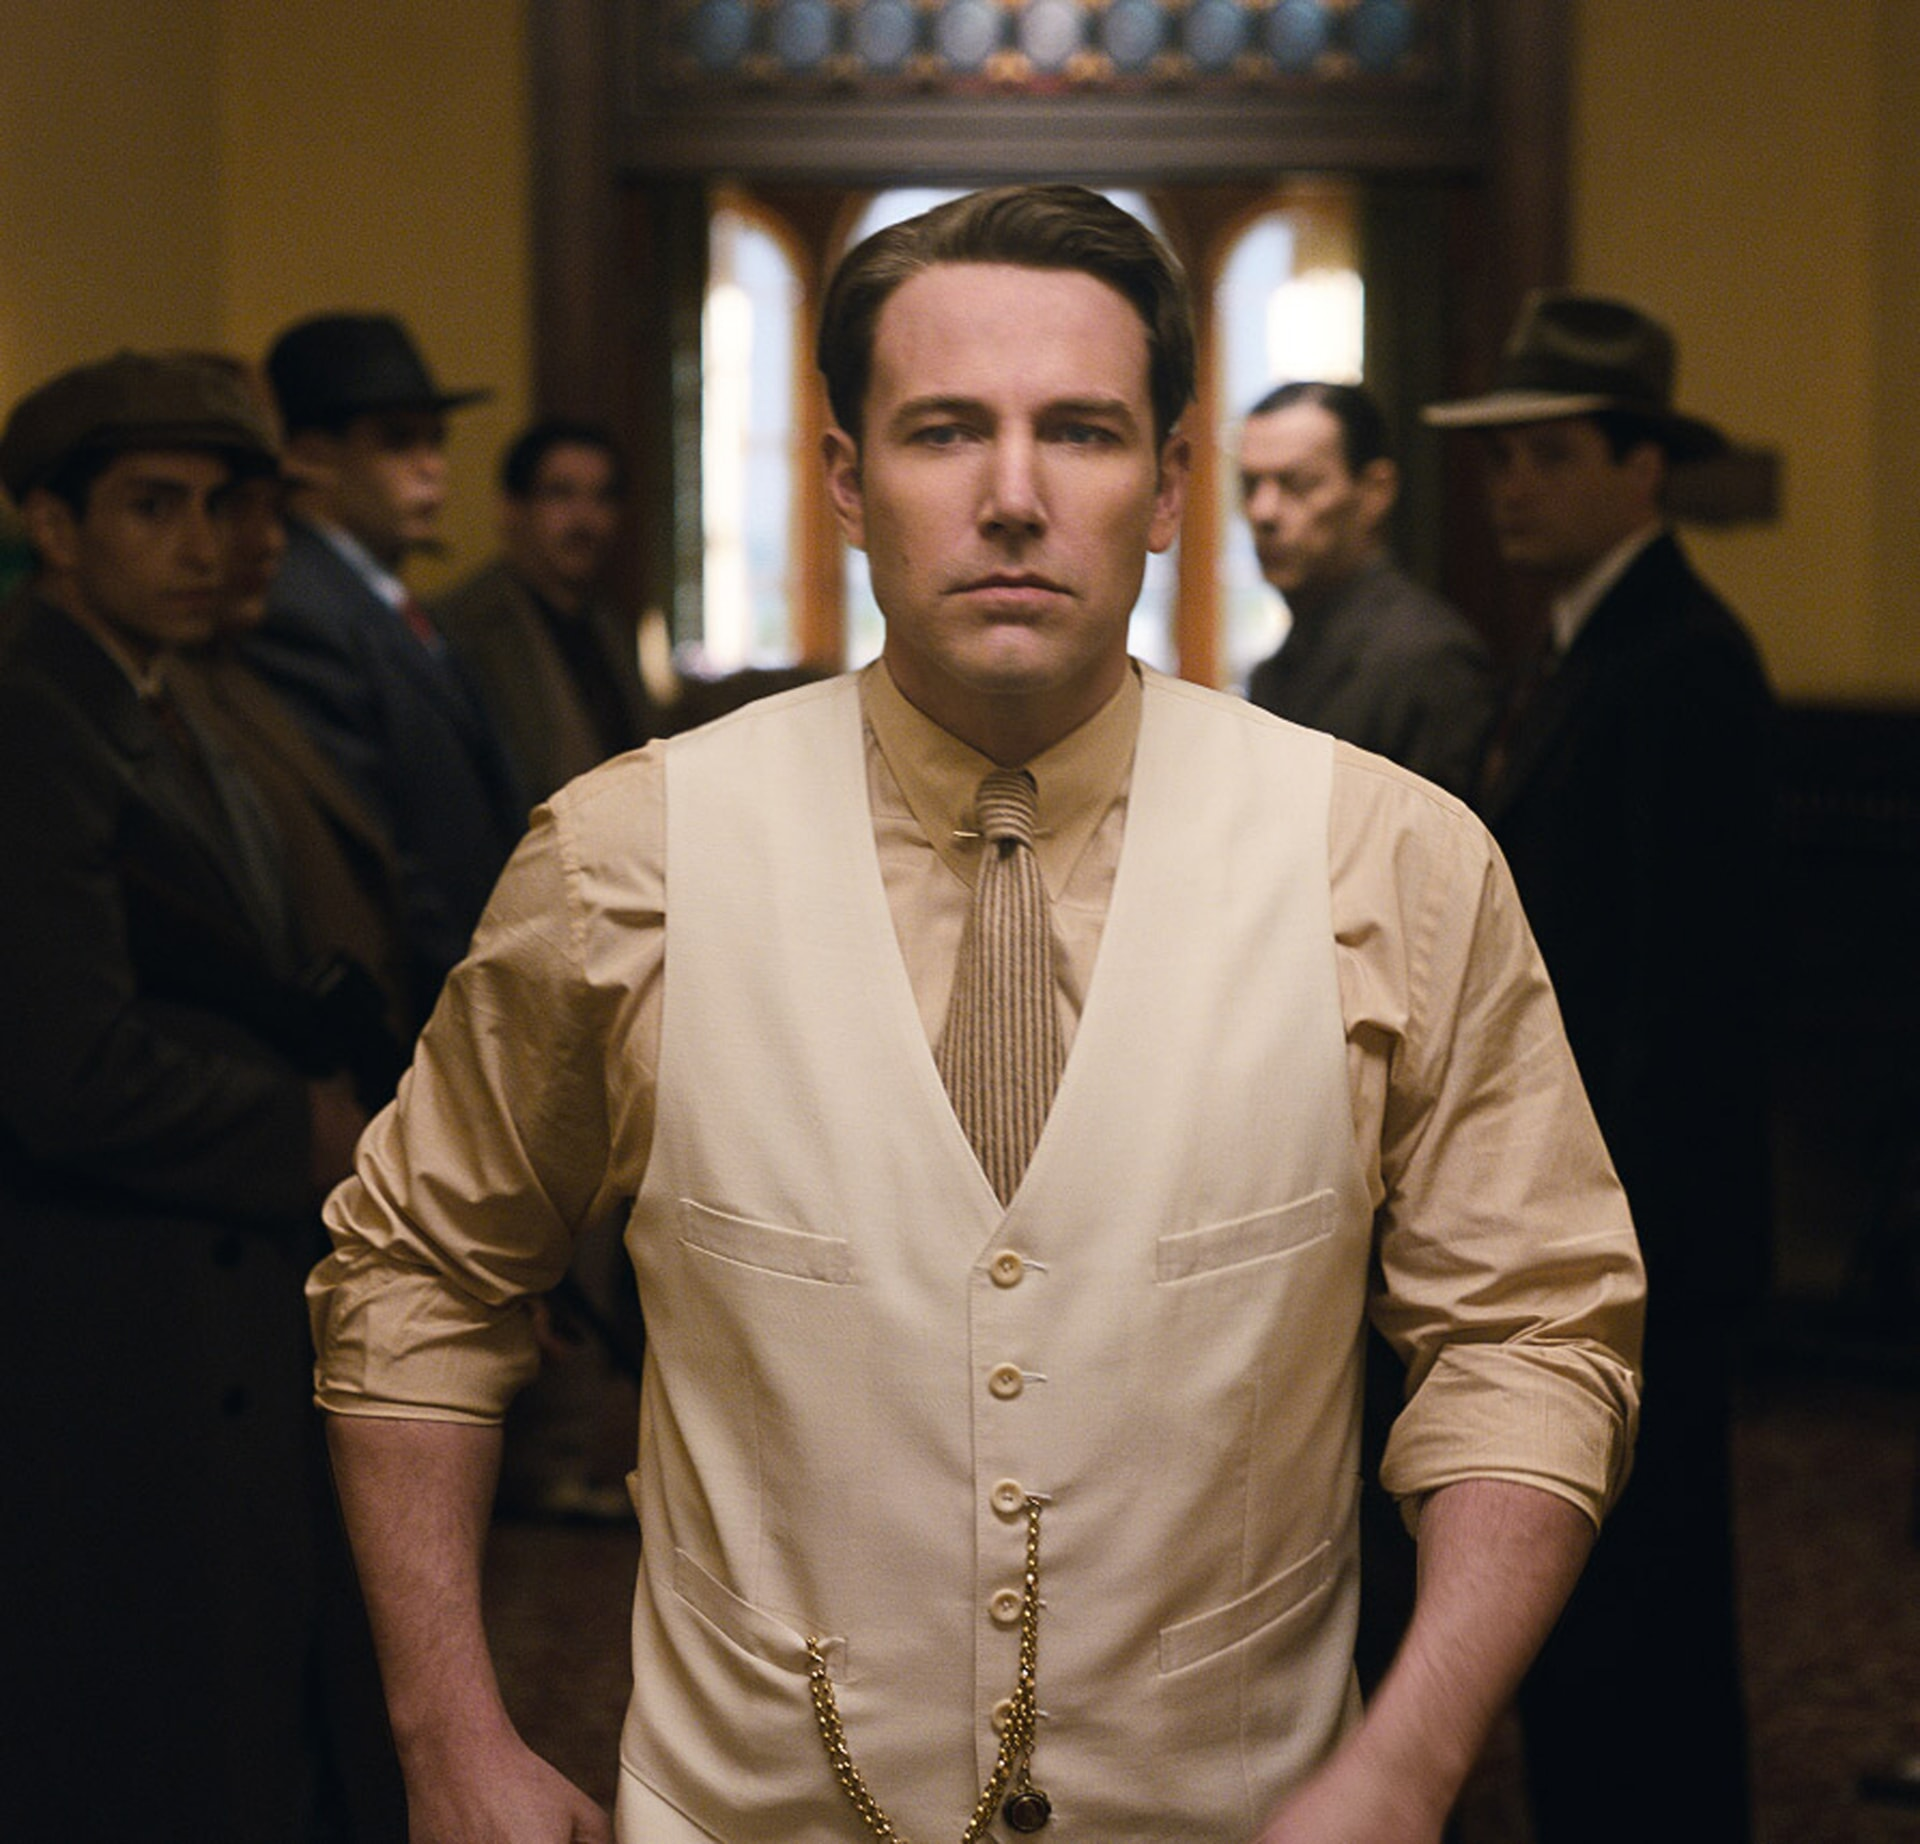 """BEN AFFLECK as Joe Coughlin in Warner Bros. Pictures' dramatic crime thriller """"LIVE BY NIGHT,"""" a Warner Bros. Pictures release."""